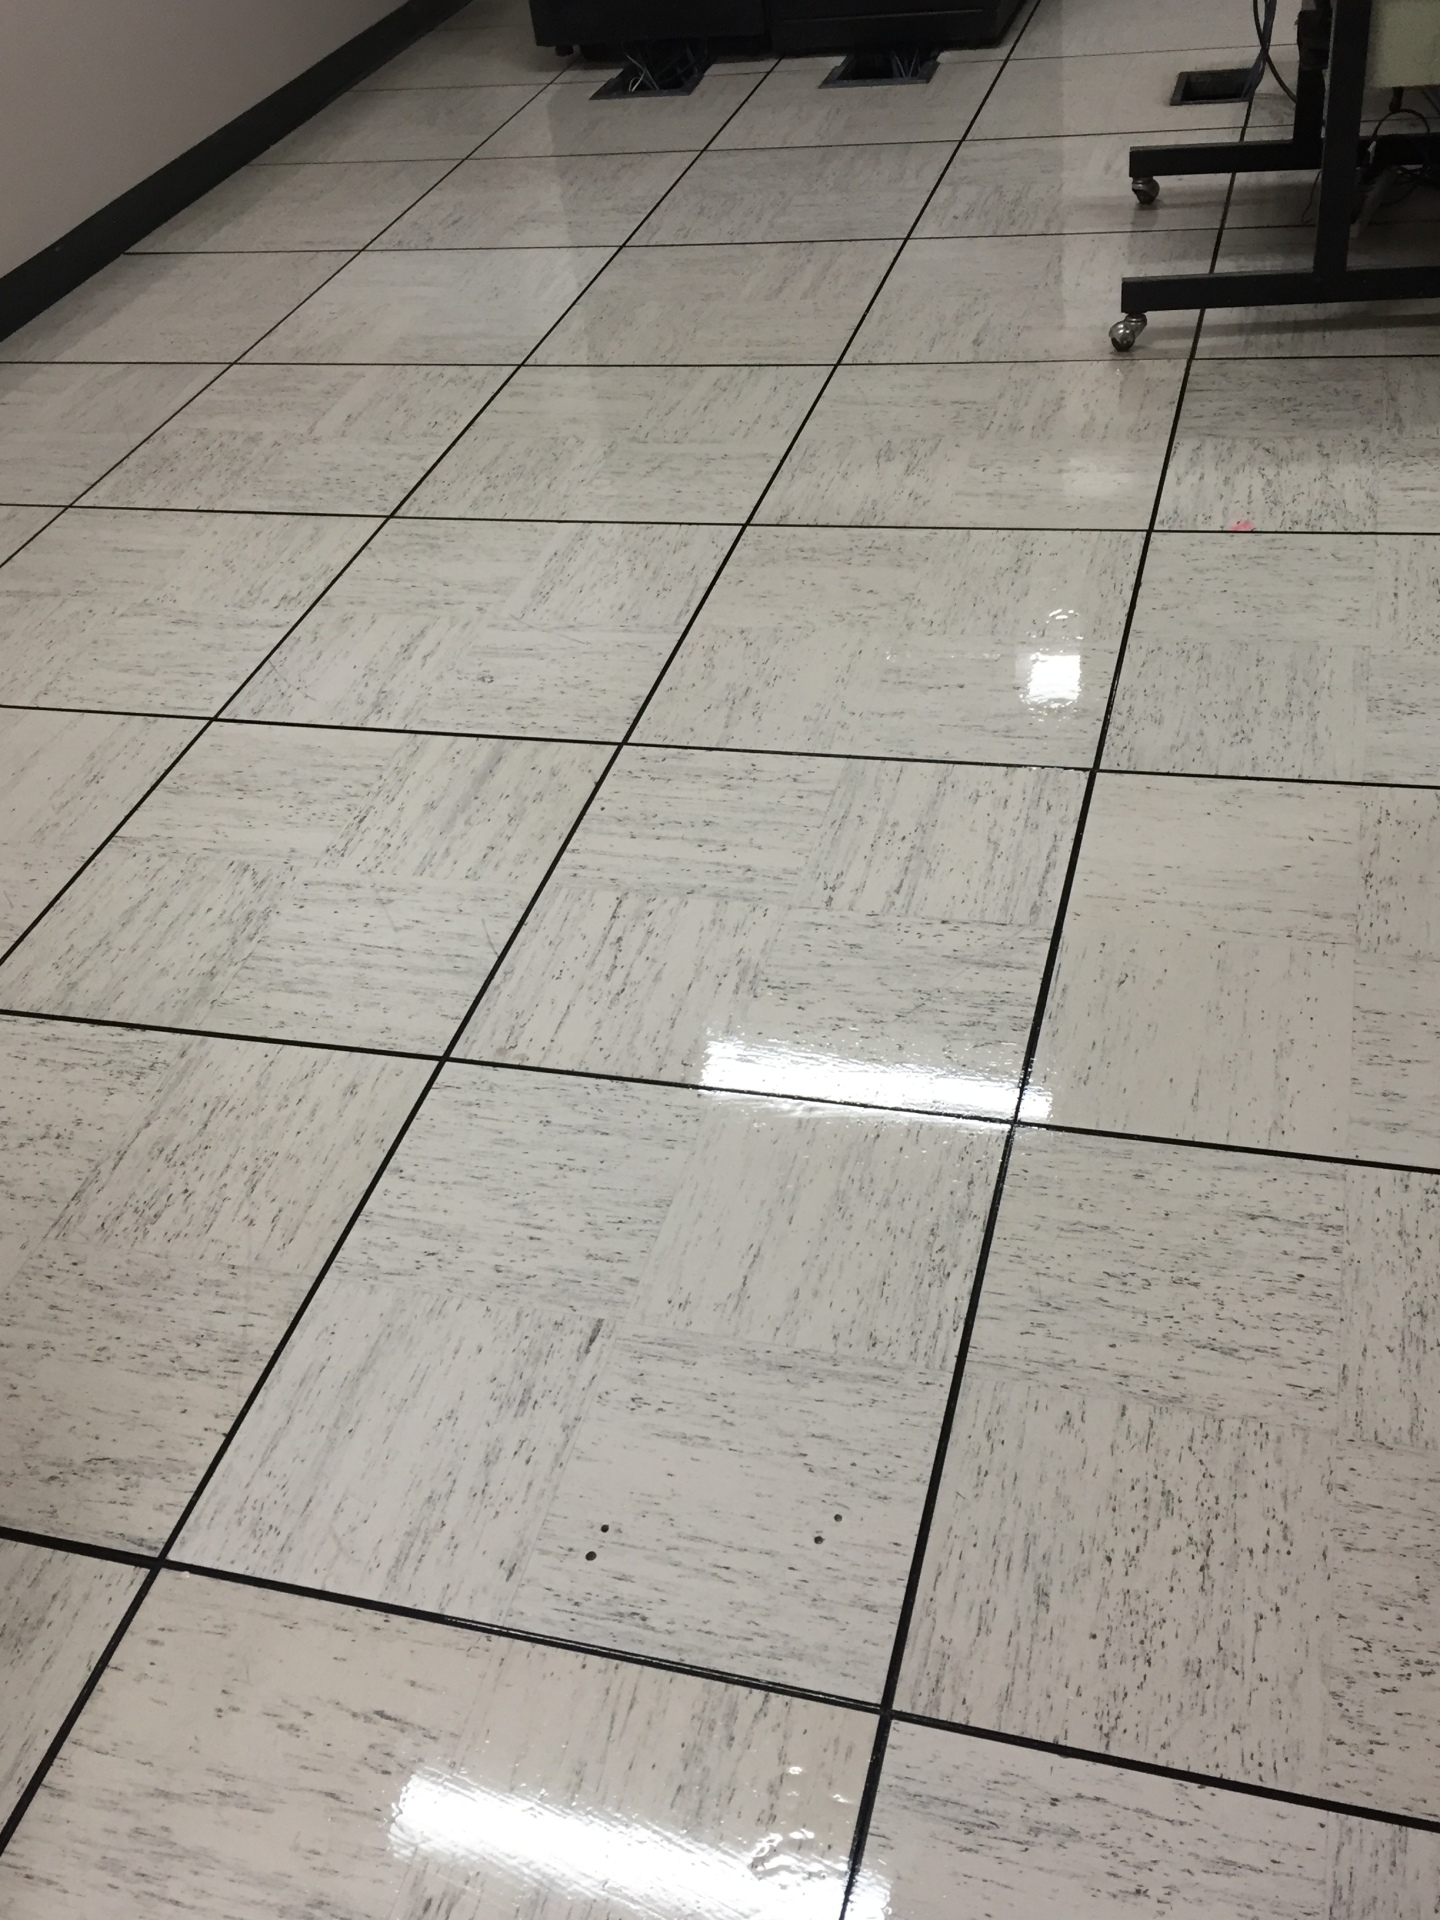 After we stripped and waxed floor.